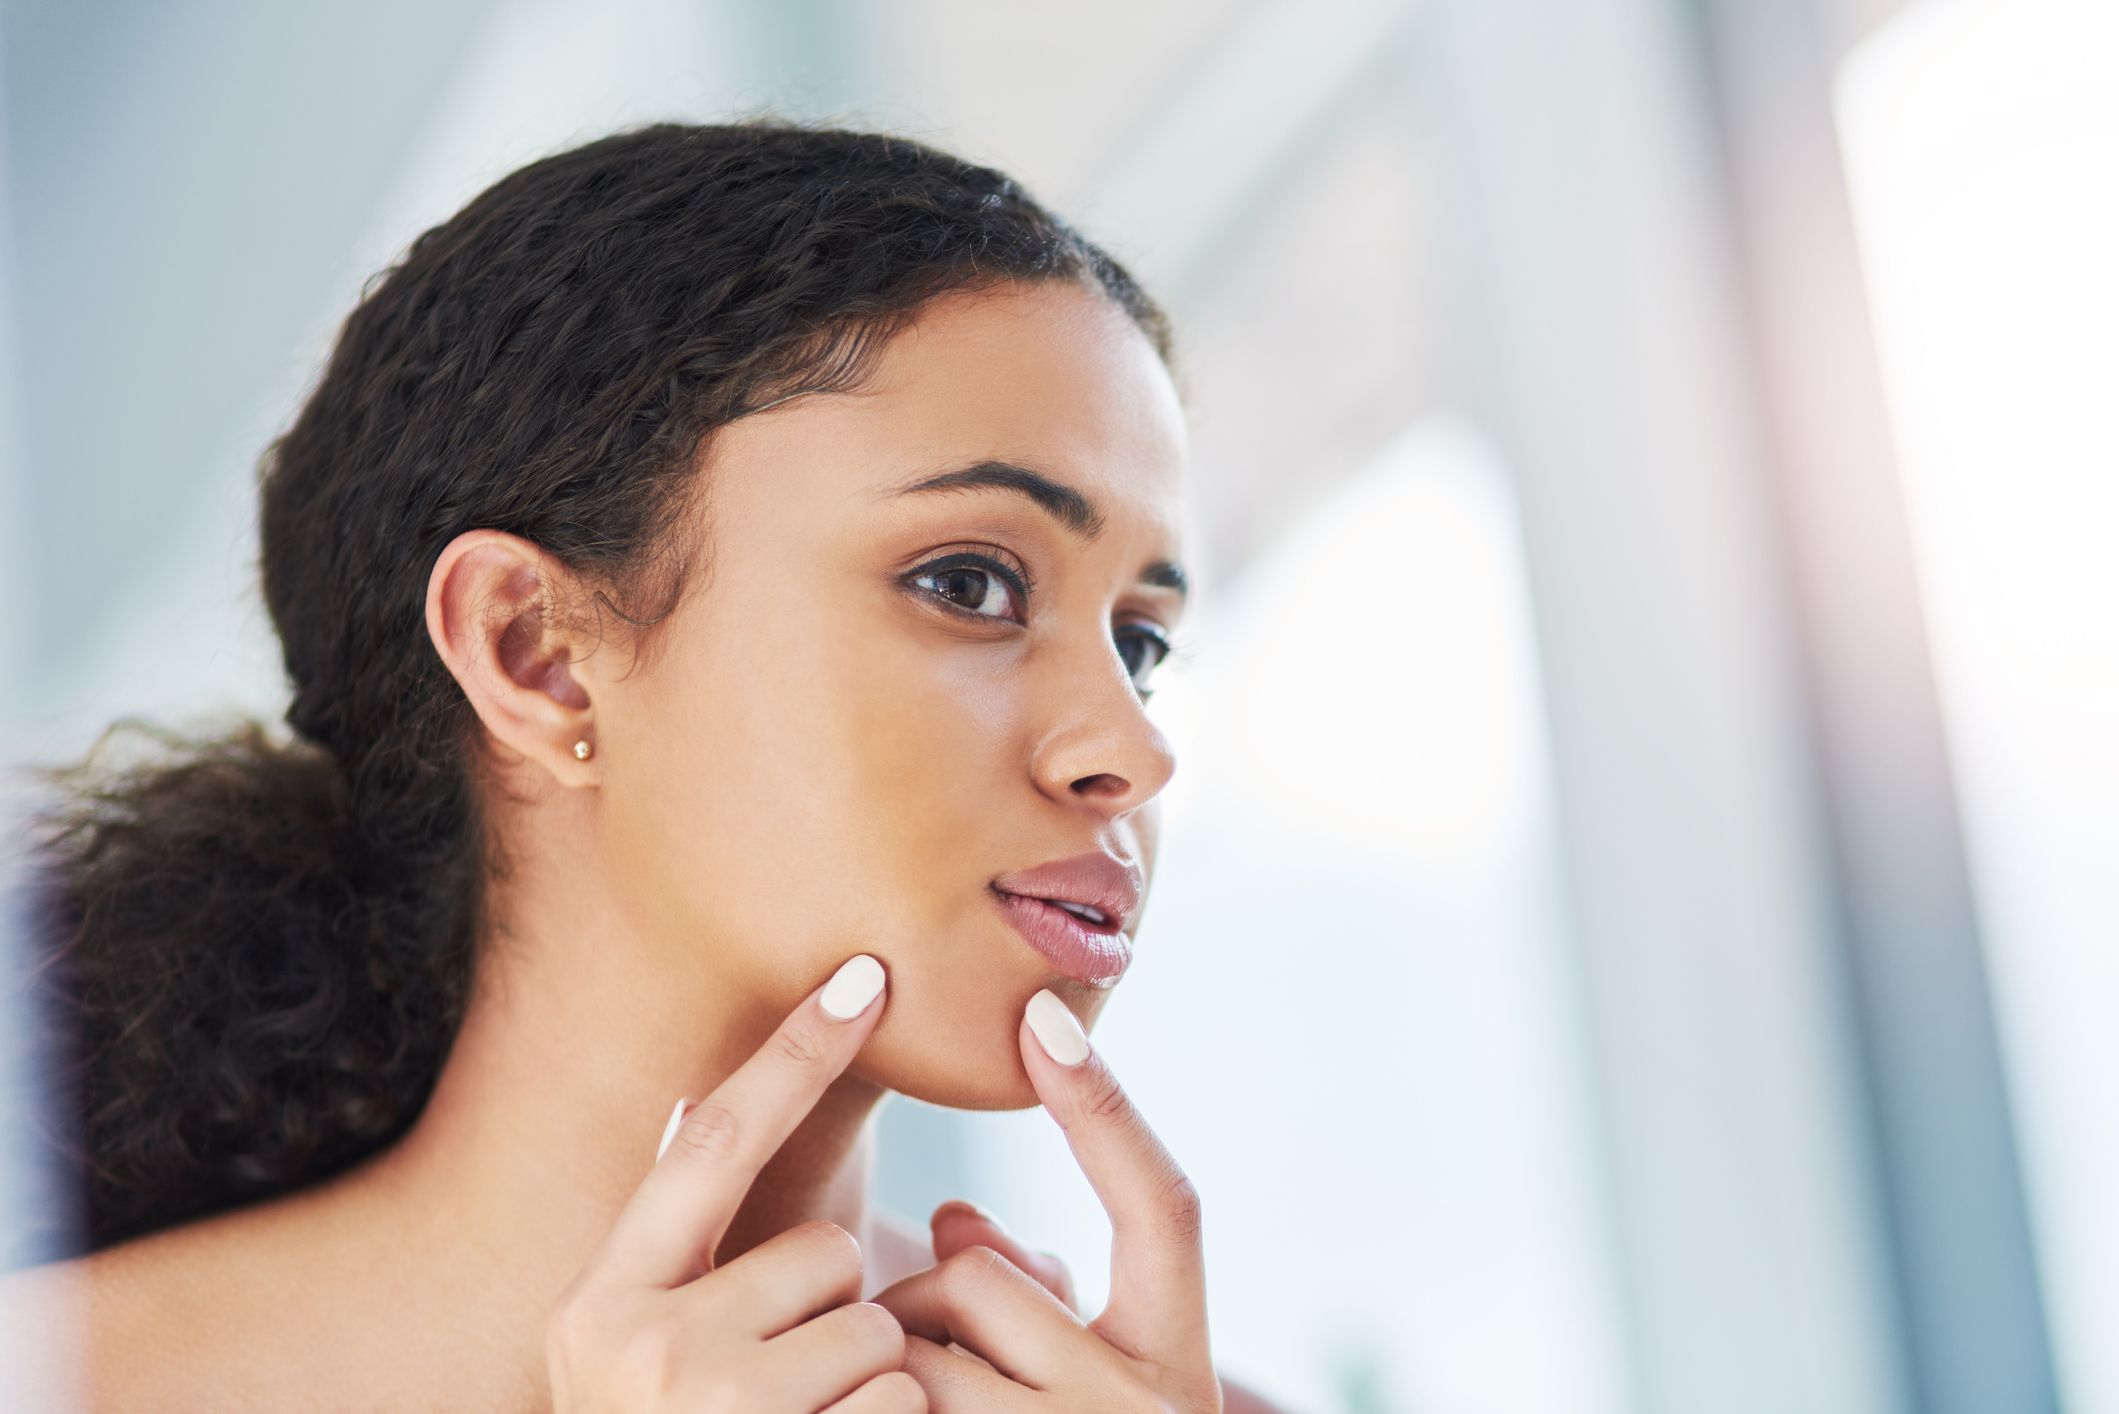 How to get rid of acne bumps fast